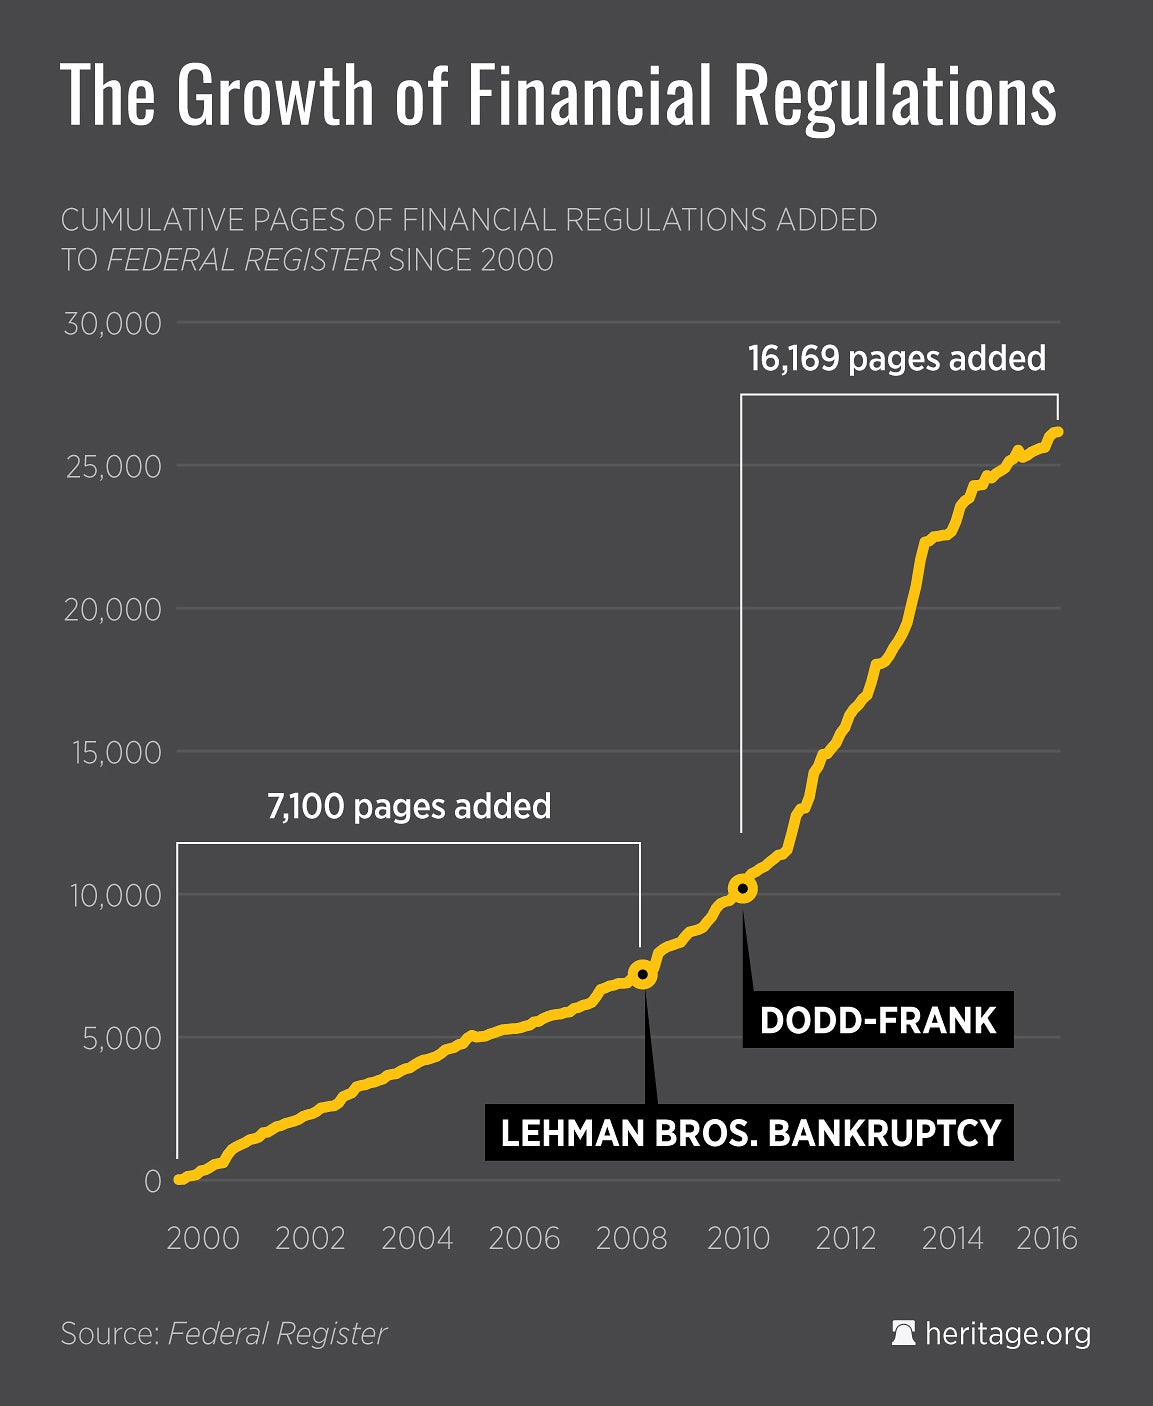 DS-financial-regulations-dodd-frank-2